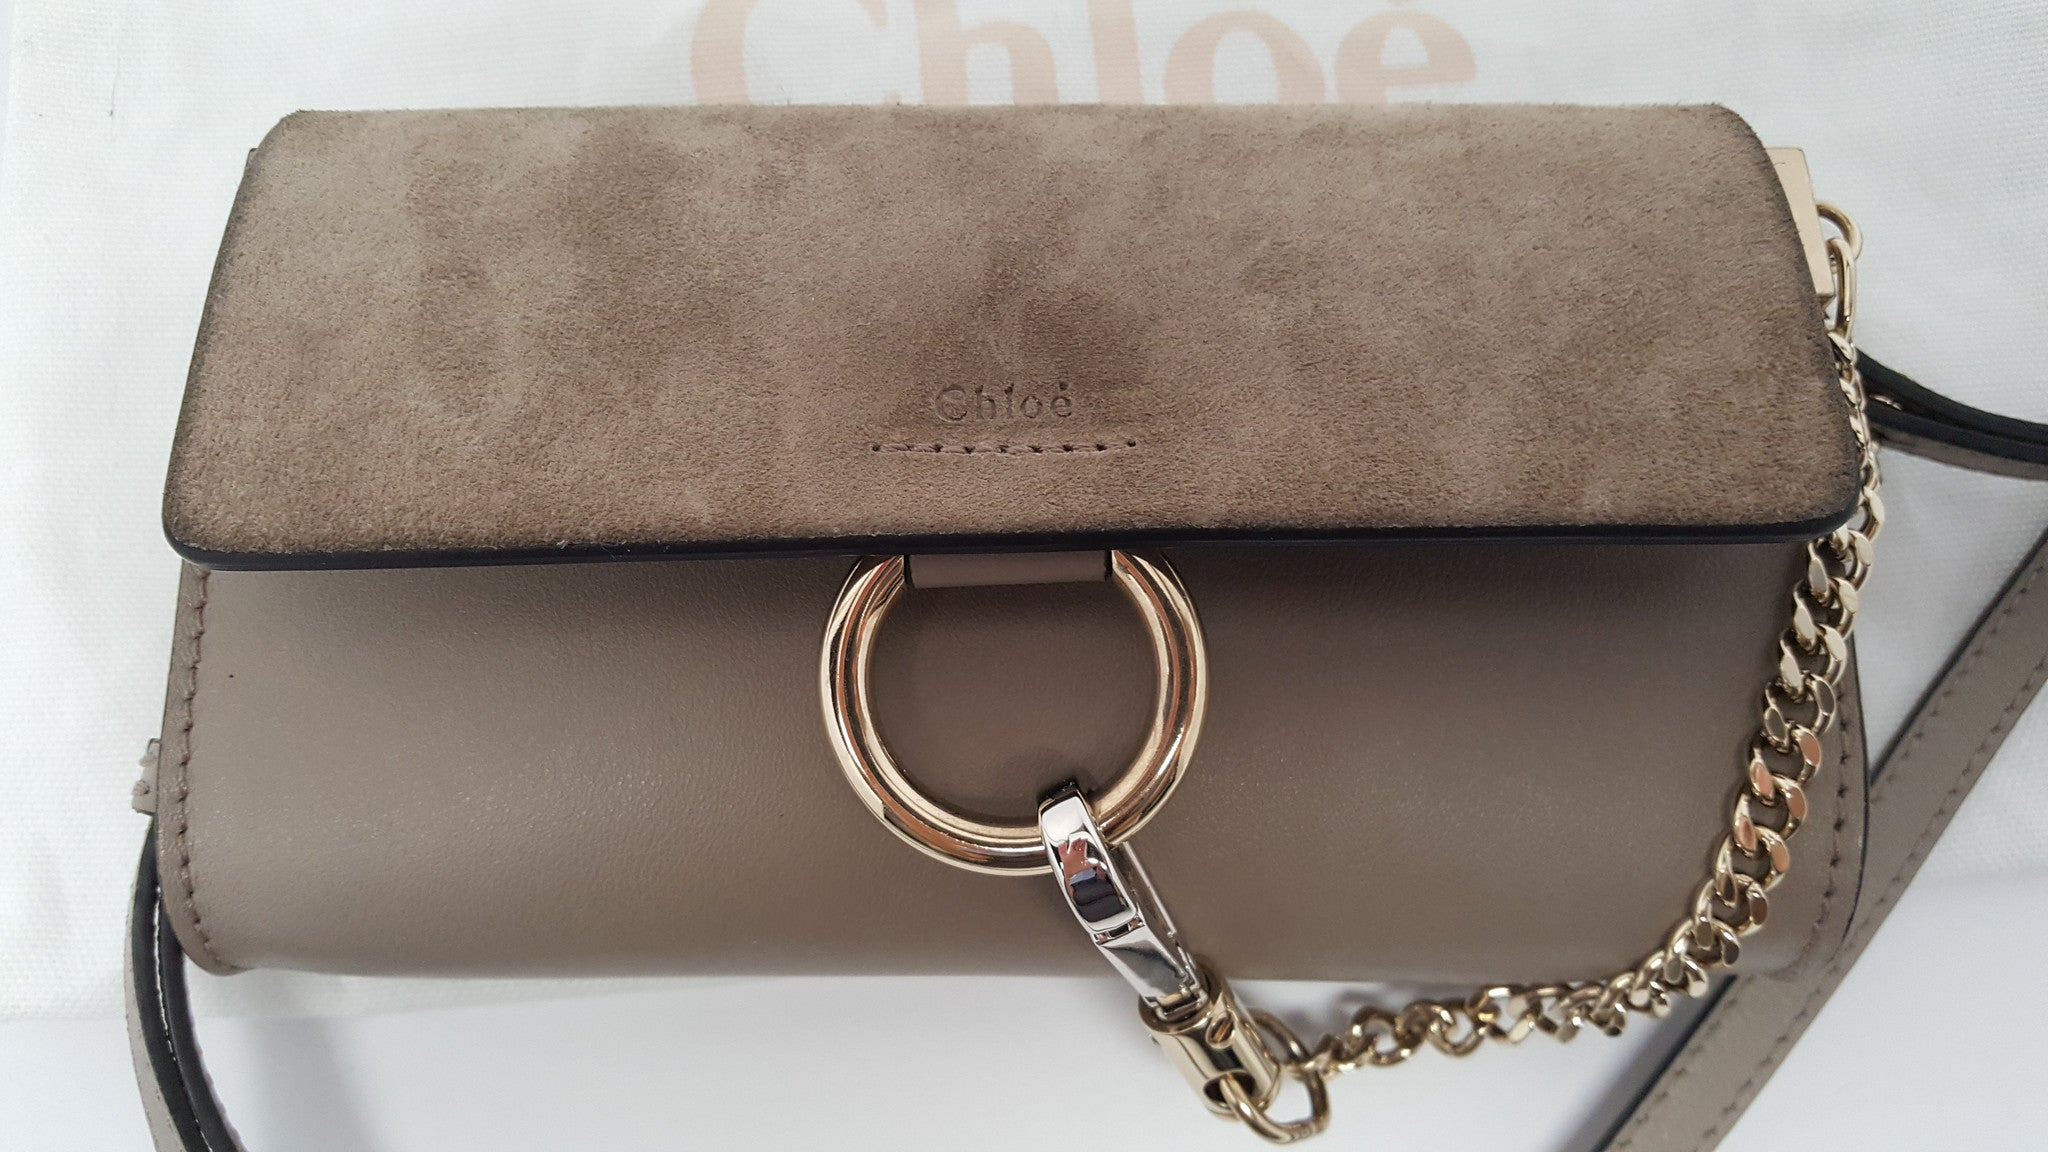 CHLOÉ FAYE MINI 'MOTTY GRAY' LEATHER AND SUEDE  SHOULDER BAG/CLUTCH